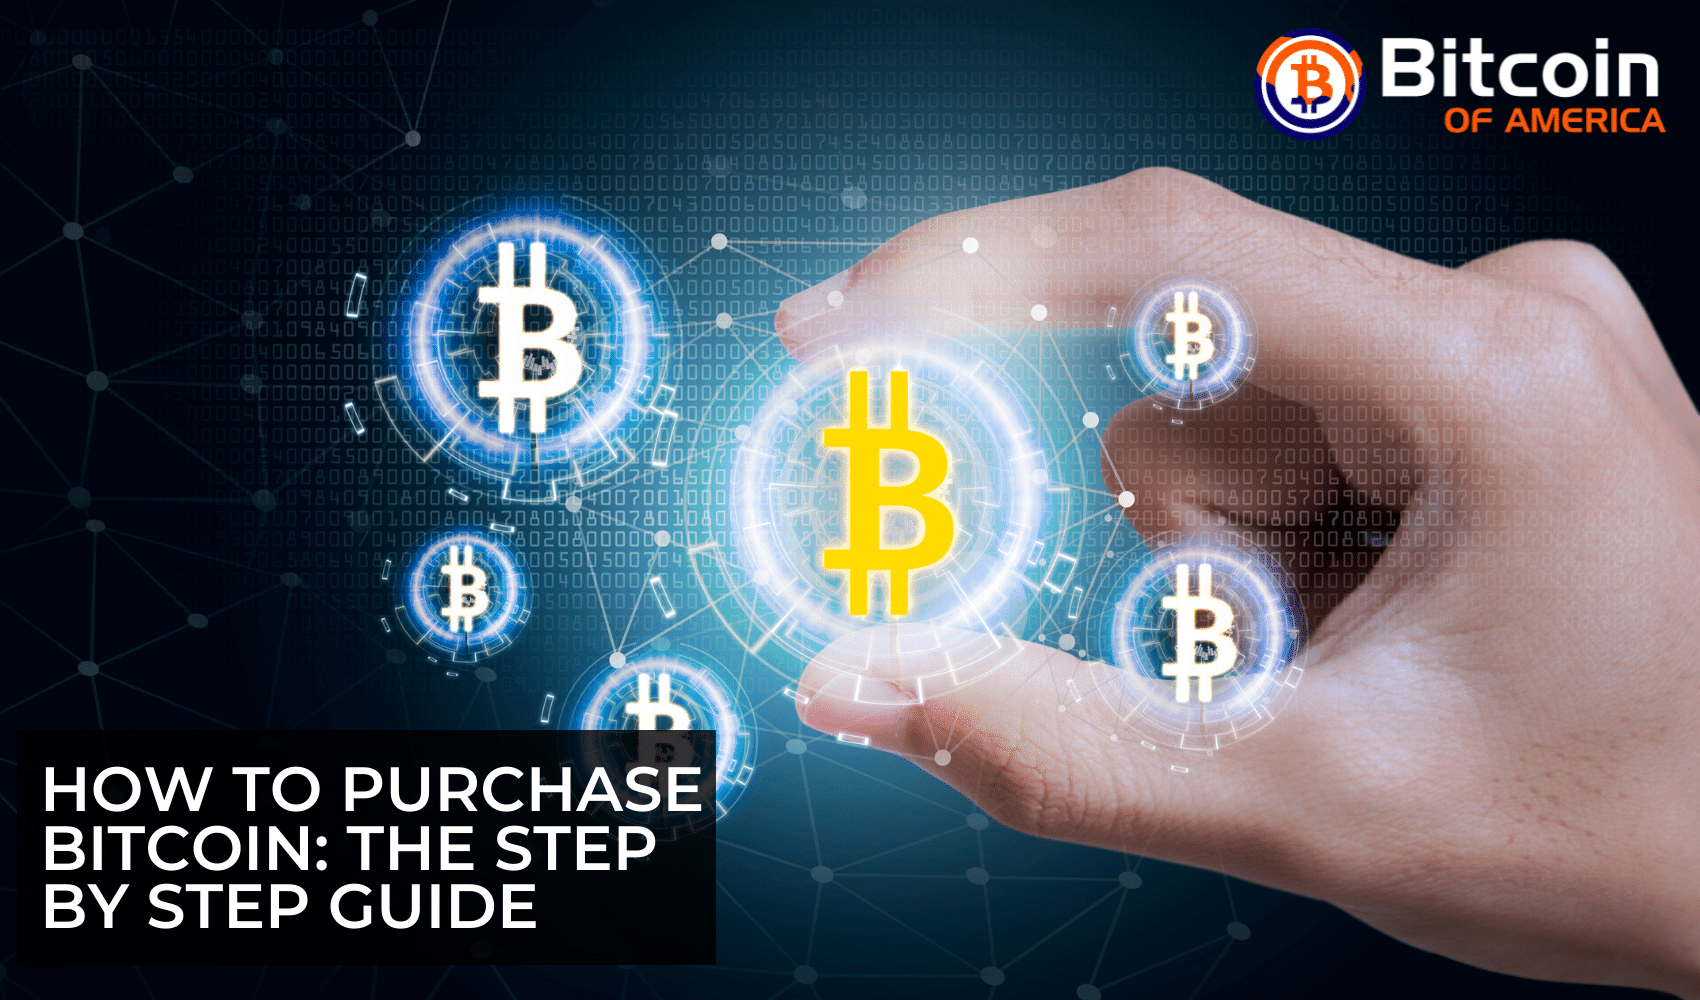 How to purchase Bitcoin: The step by step guide